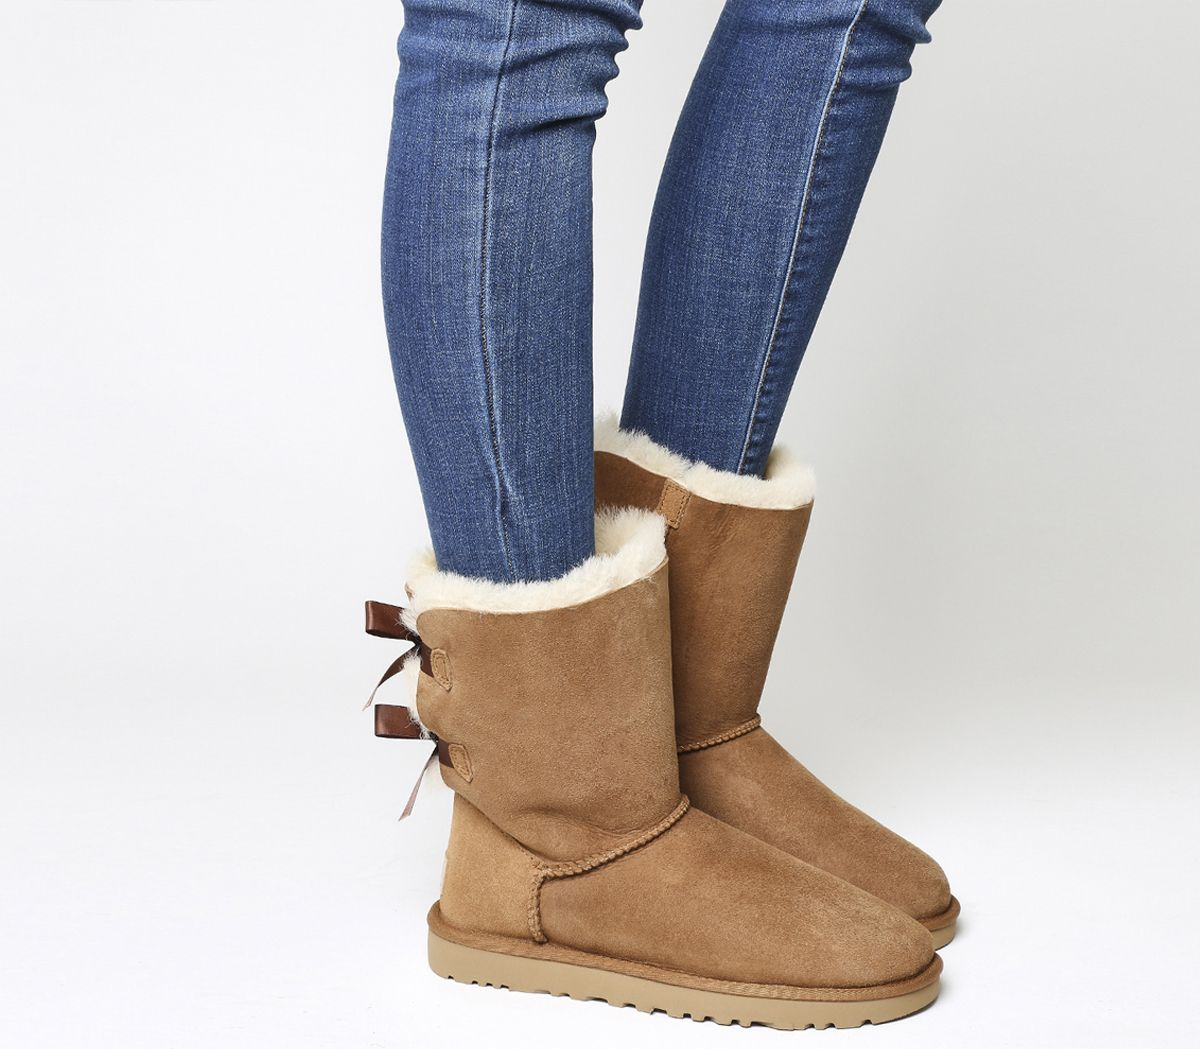 f0743ec7b48b UGG Bailey Bow II Calf Boots Chestnut Suede - Ankle Boots